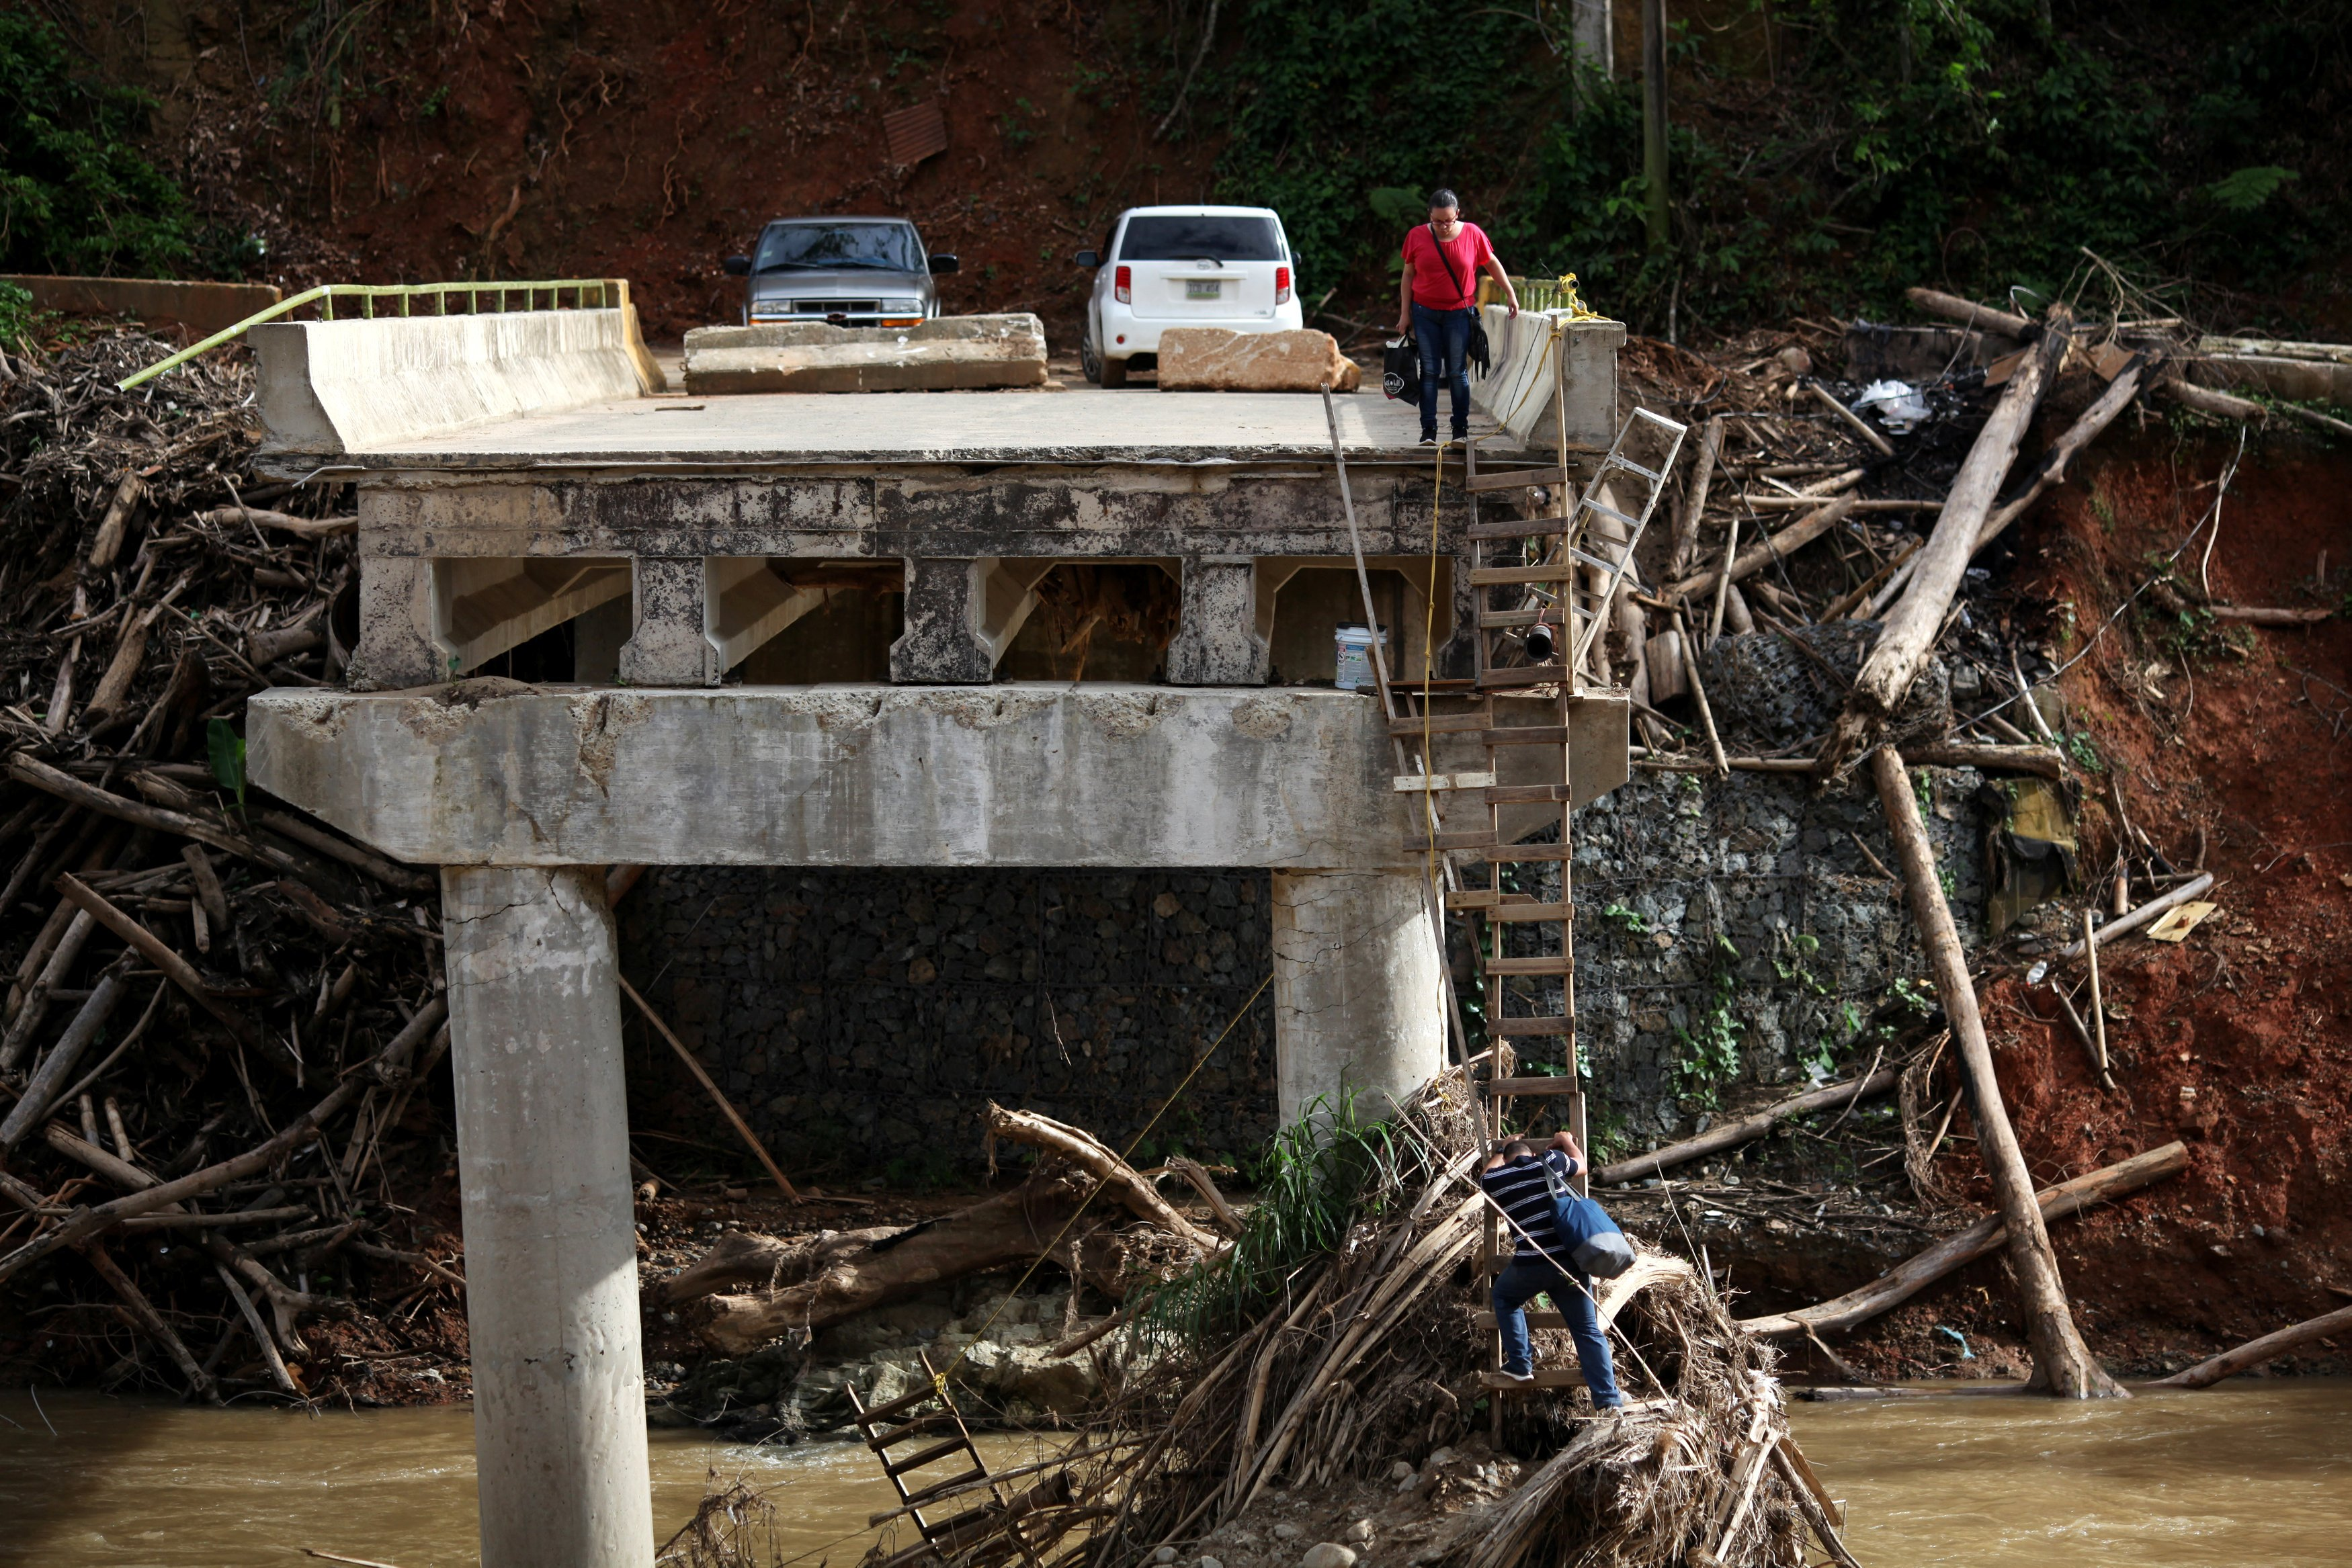 Image: A woman looks as her husband climbs down a ladder at a partially destroyed bridge, after Hurricane Maria hit the area in September, in Utuado